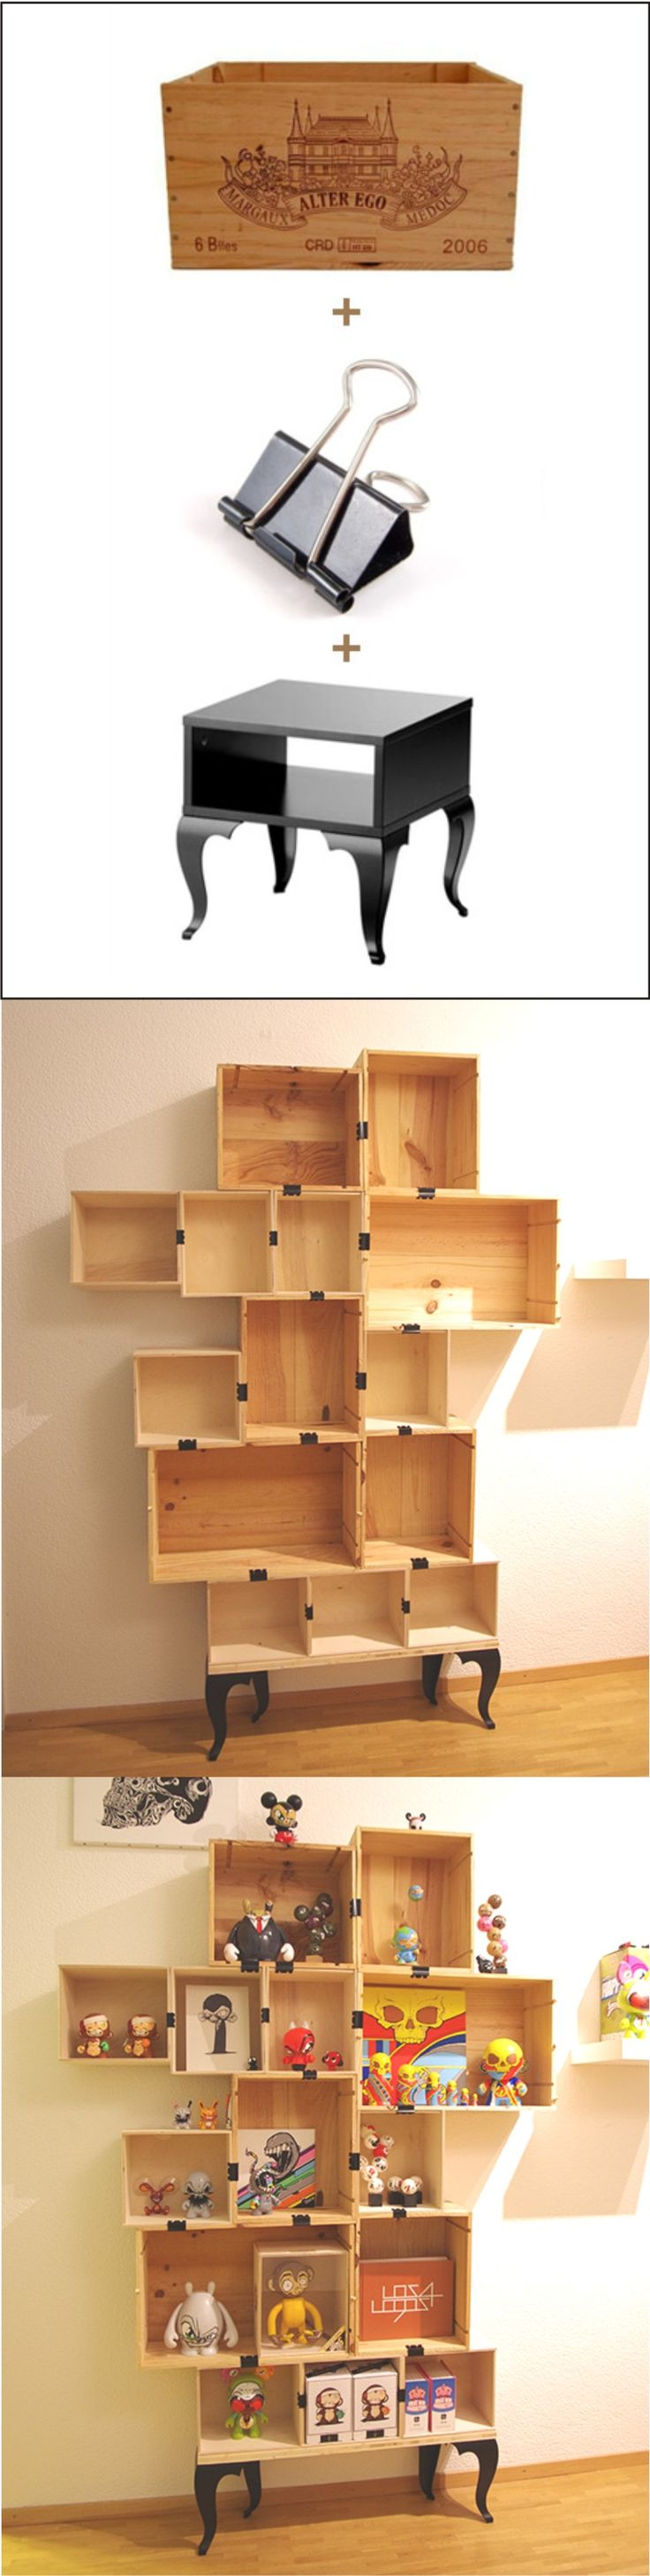 Ingenious shelf made with wine boxes / Via http://www.2much.ch/